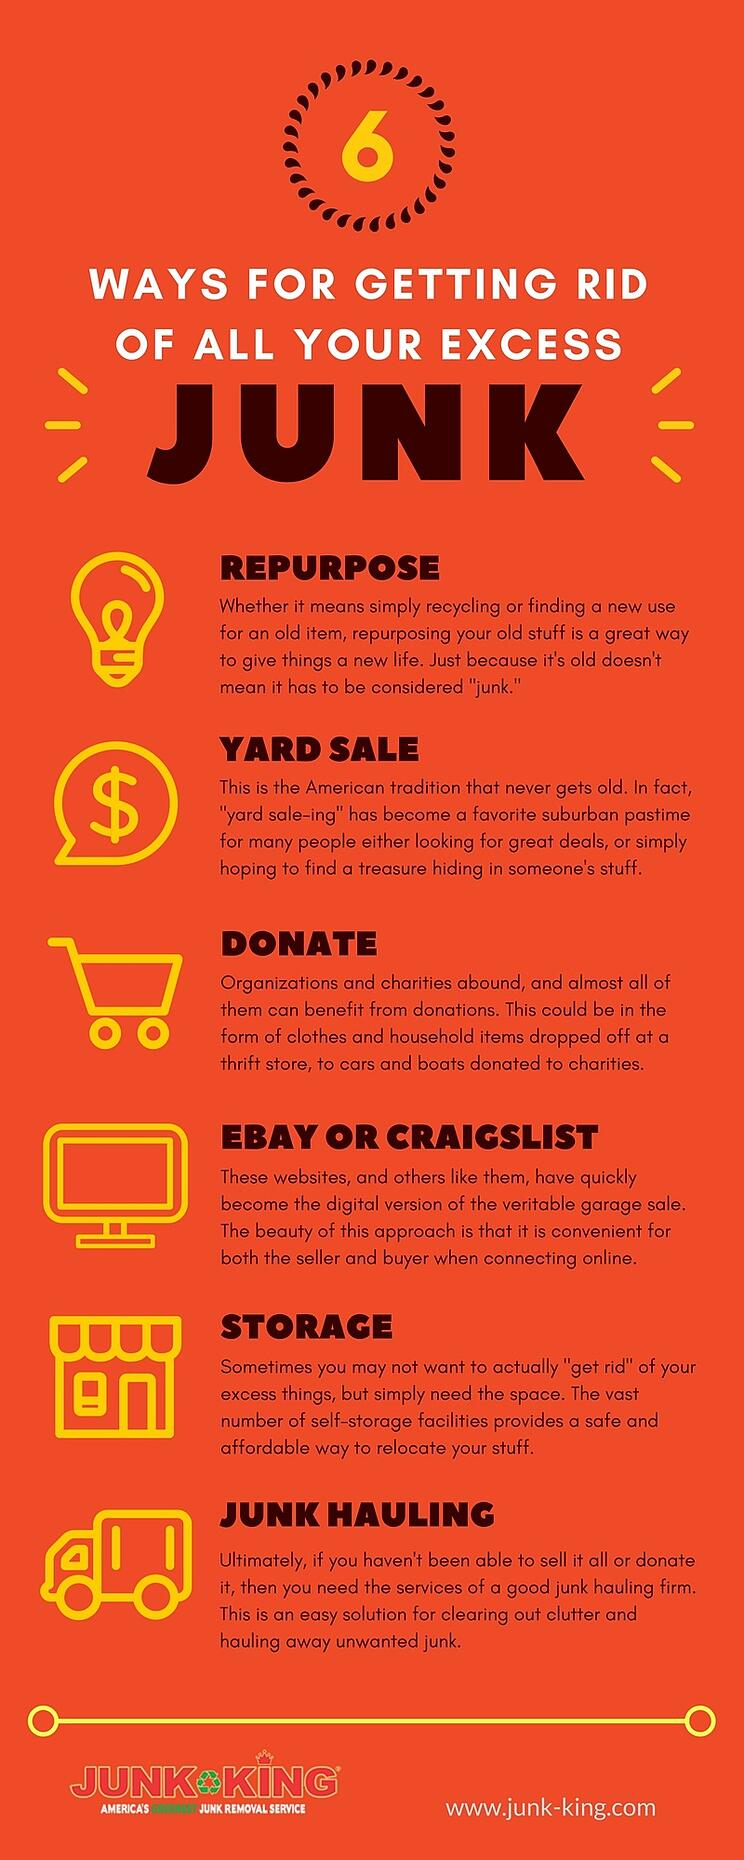 6-tips-for-taking-care-of-junk-infographic